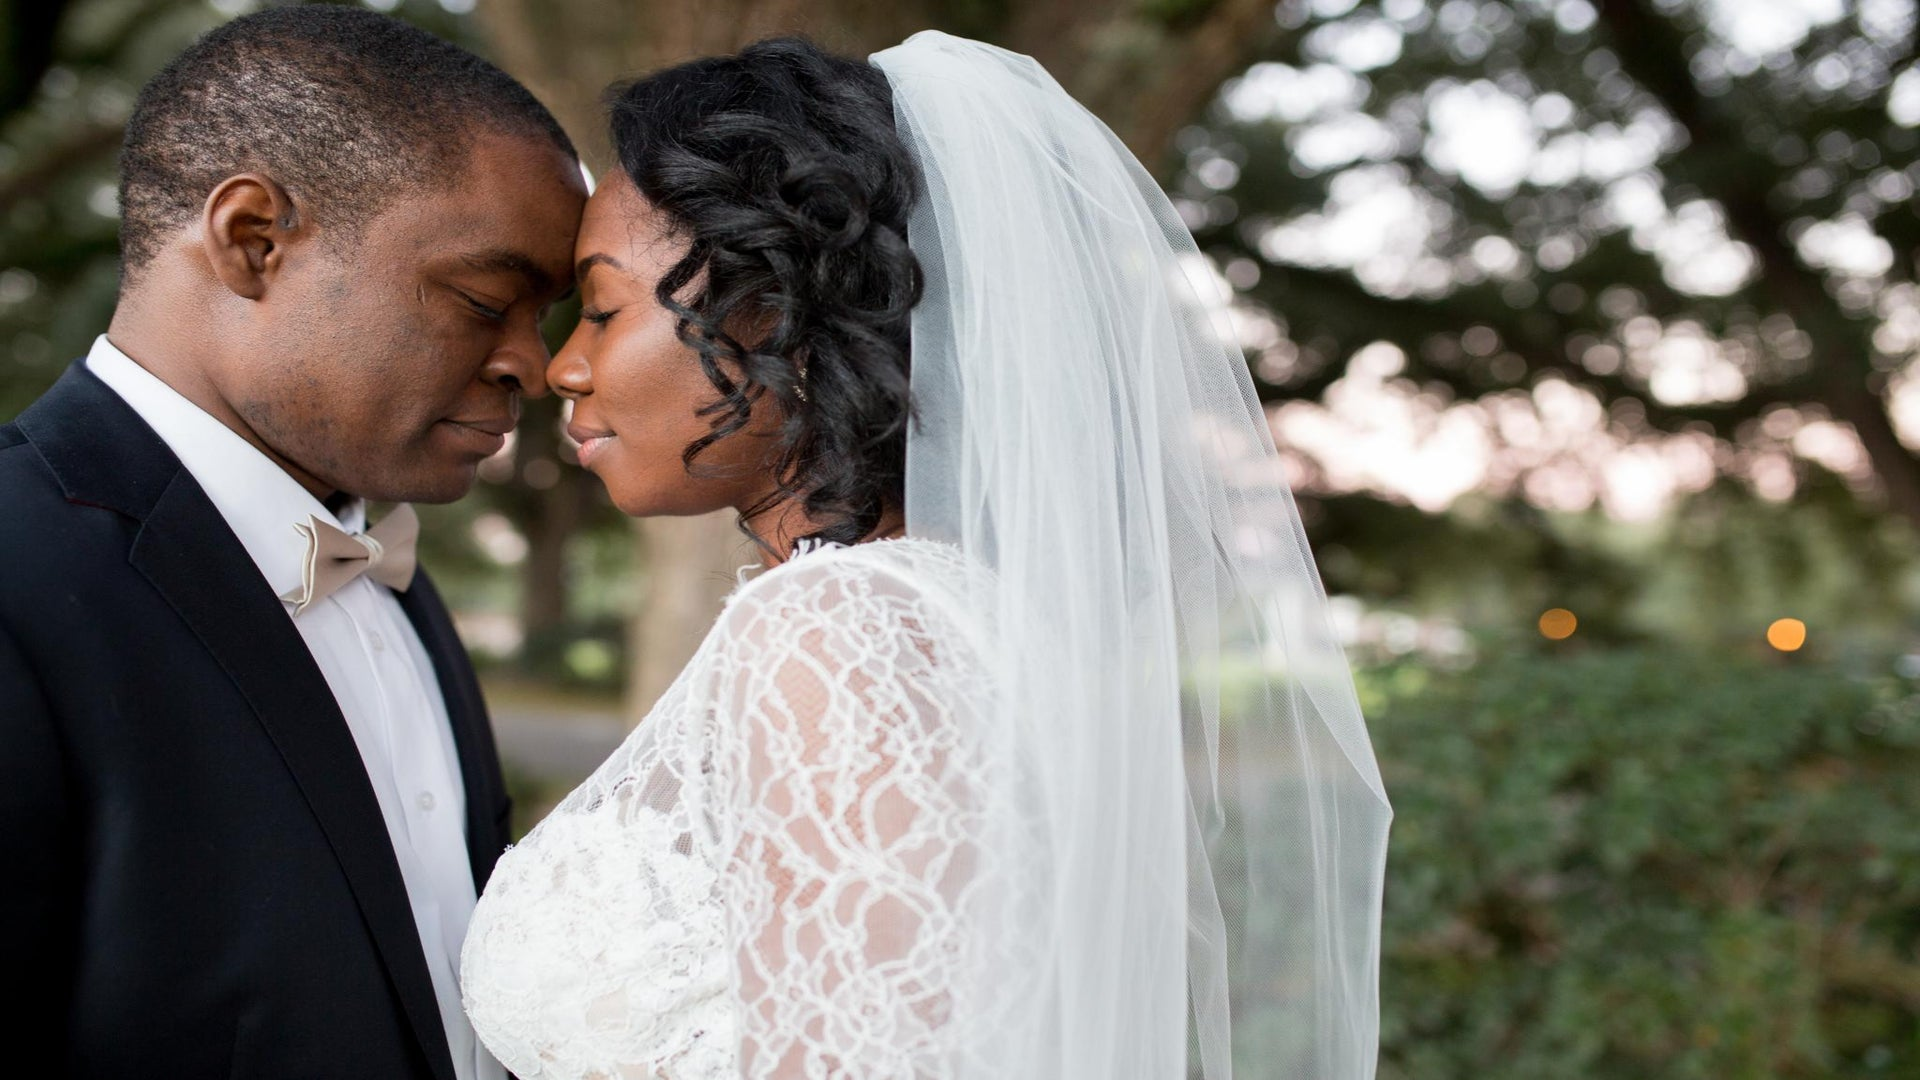 Bridal Bliss: Danielle and Ademola's Alabama Wedding